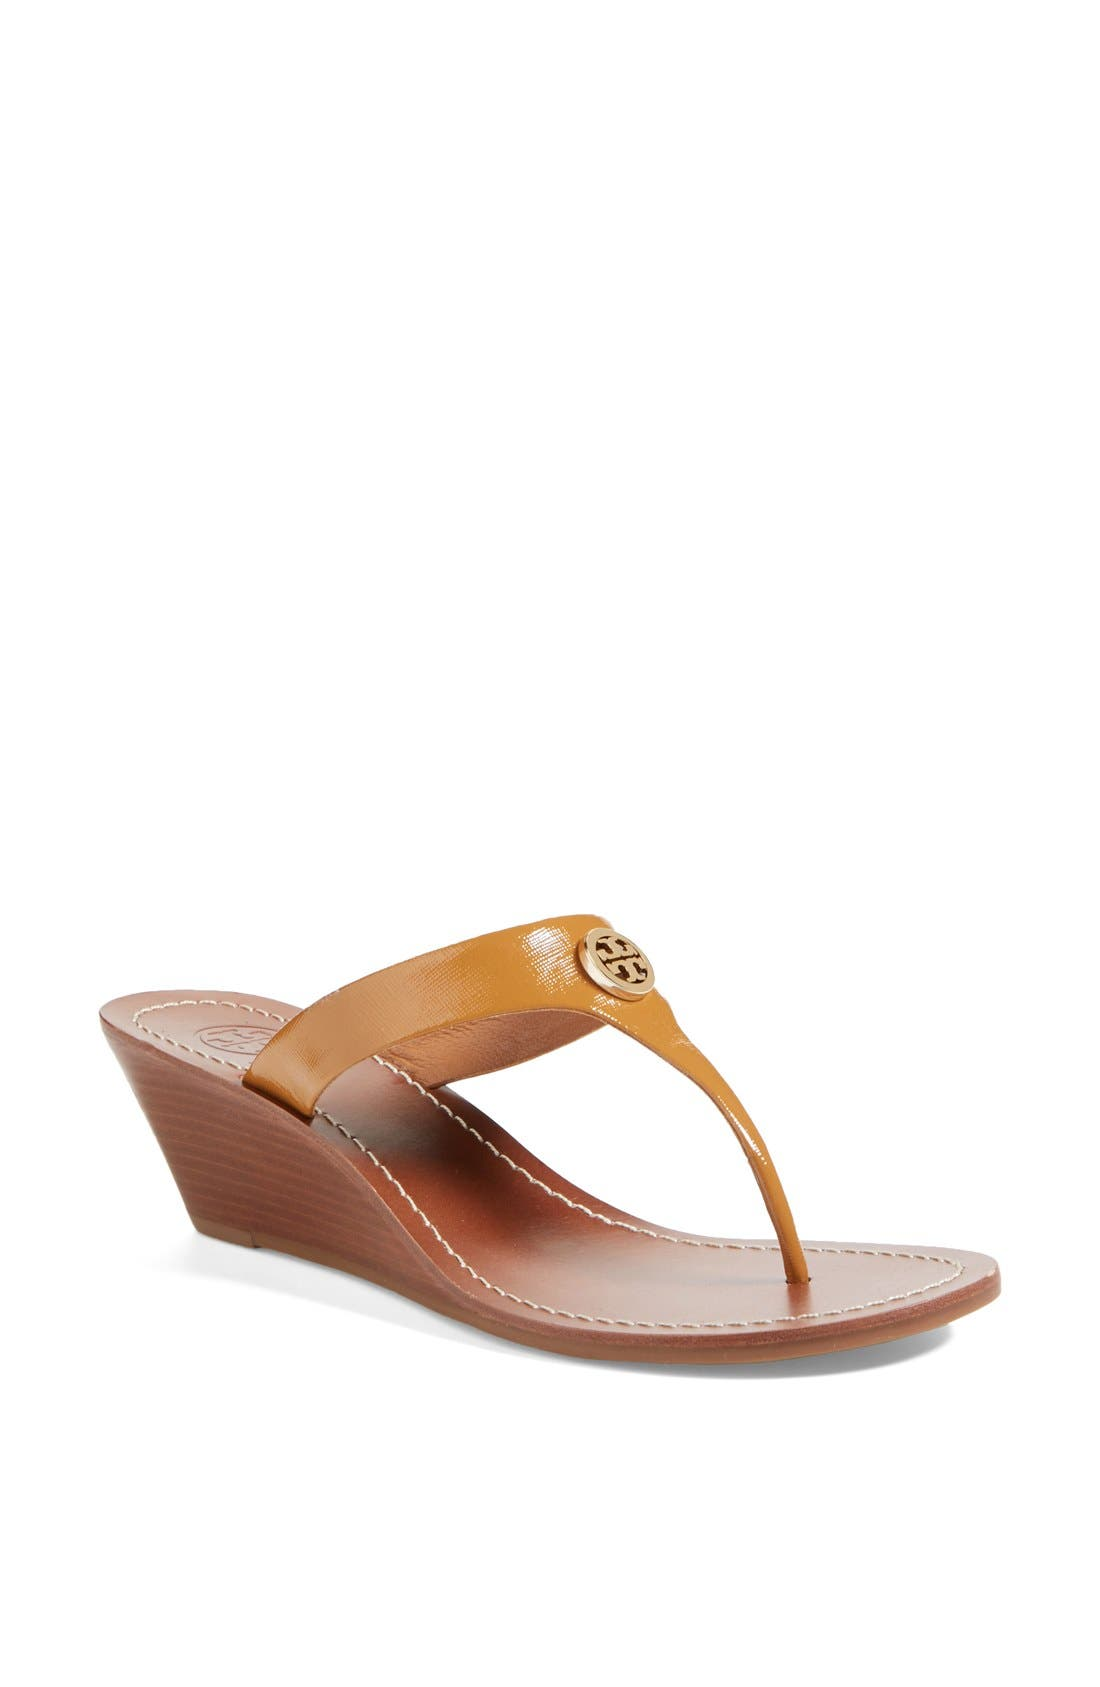 Alternate Image 1 Selected - Tory Burch 'Cameron' Wedge Sandal (Online Only)